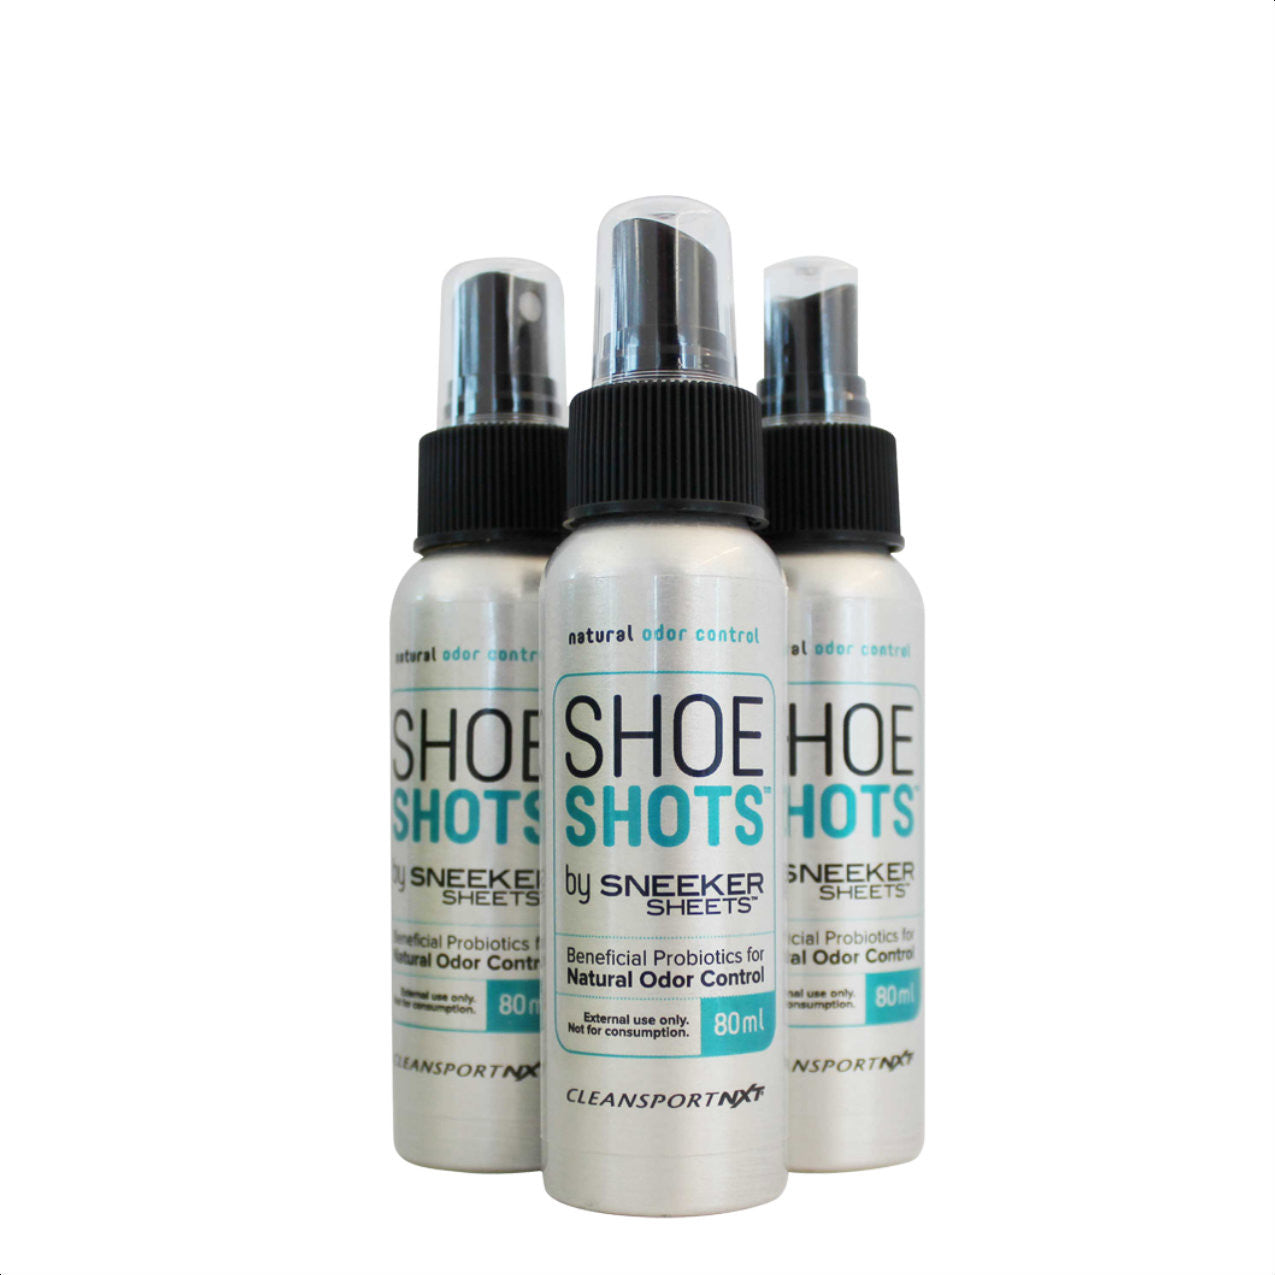 shoe shots odor control spray 80 ml